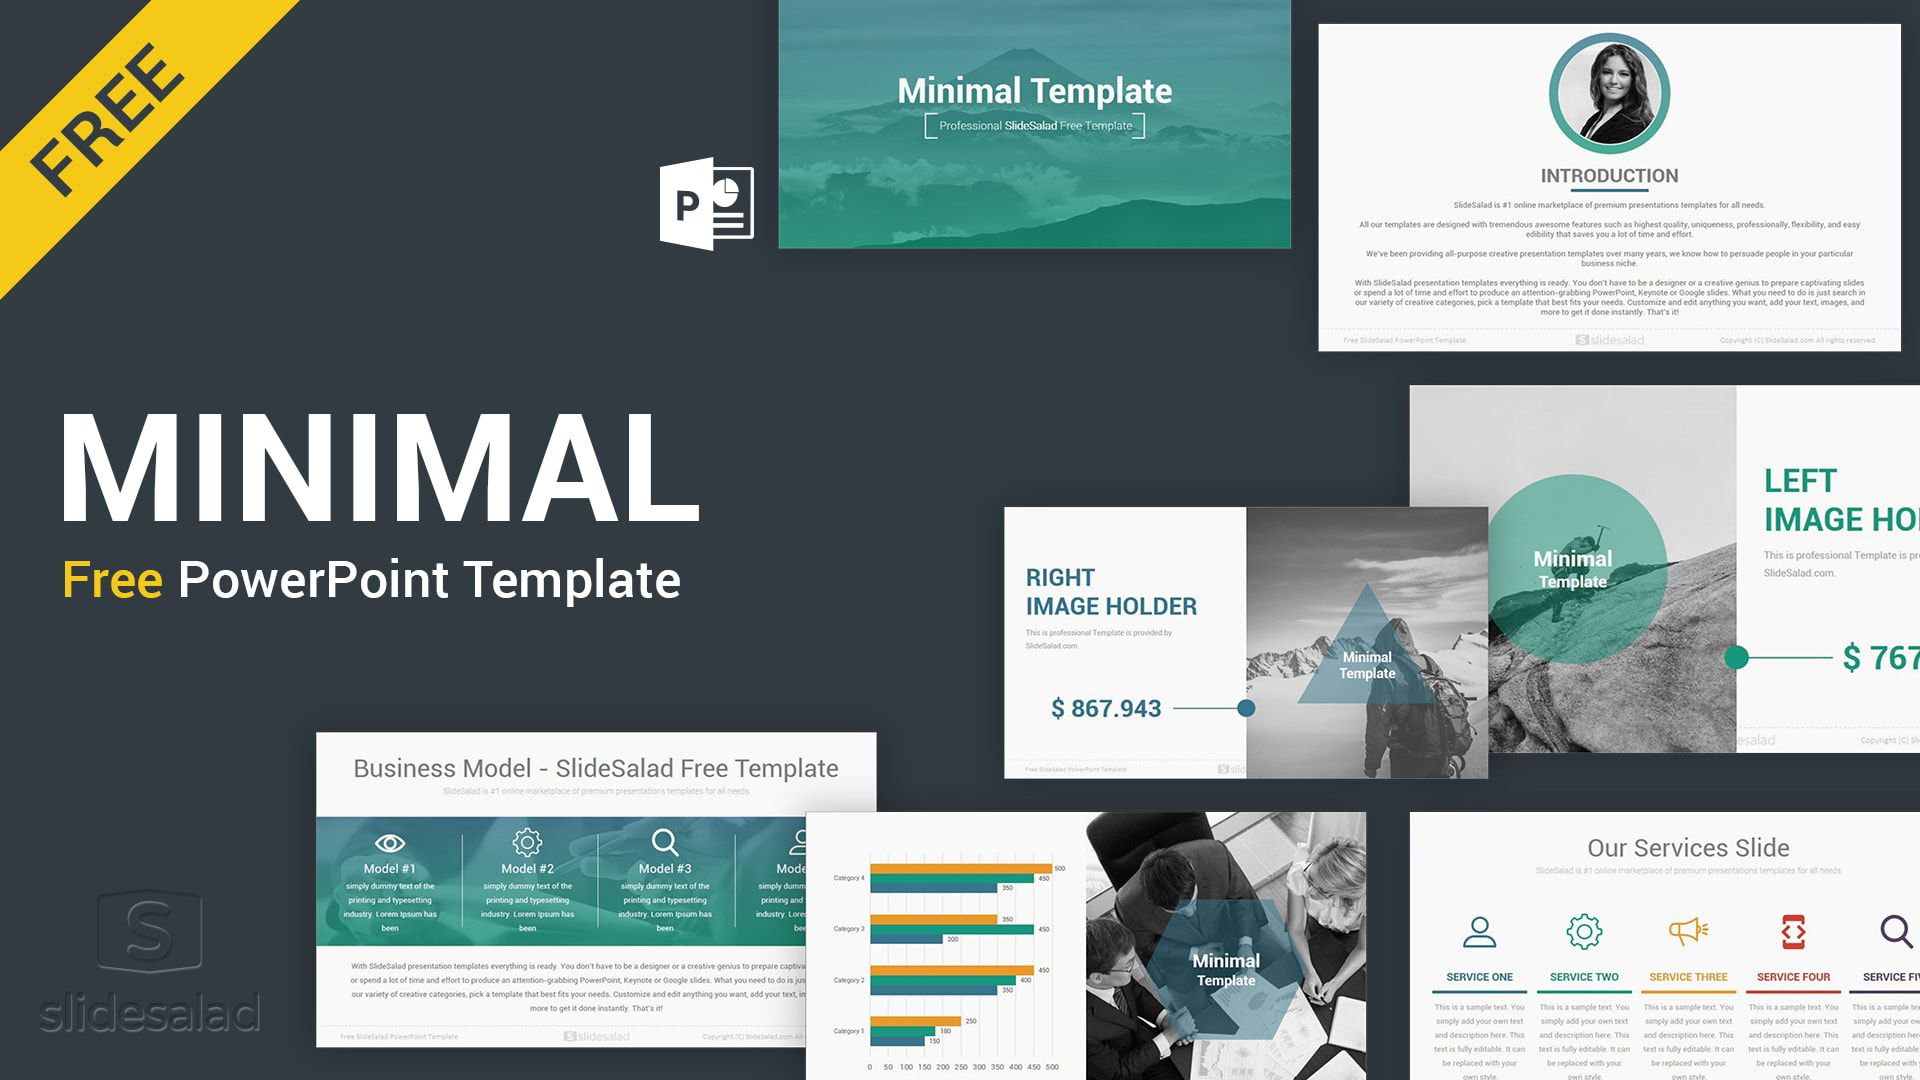 006 Remarkable Power Point Presentation Template Free Idea  Powerpoint Layout Download 2019 Modern BusinesFull